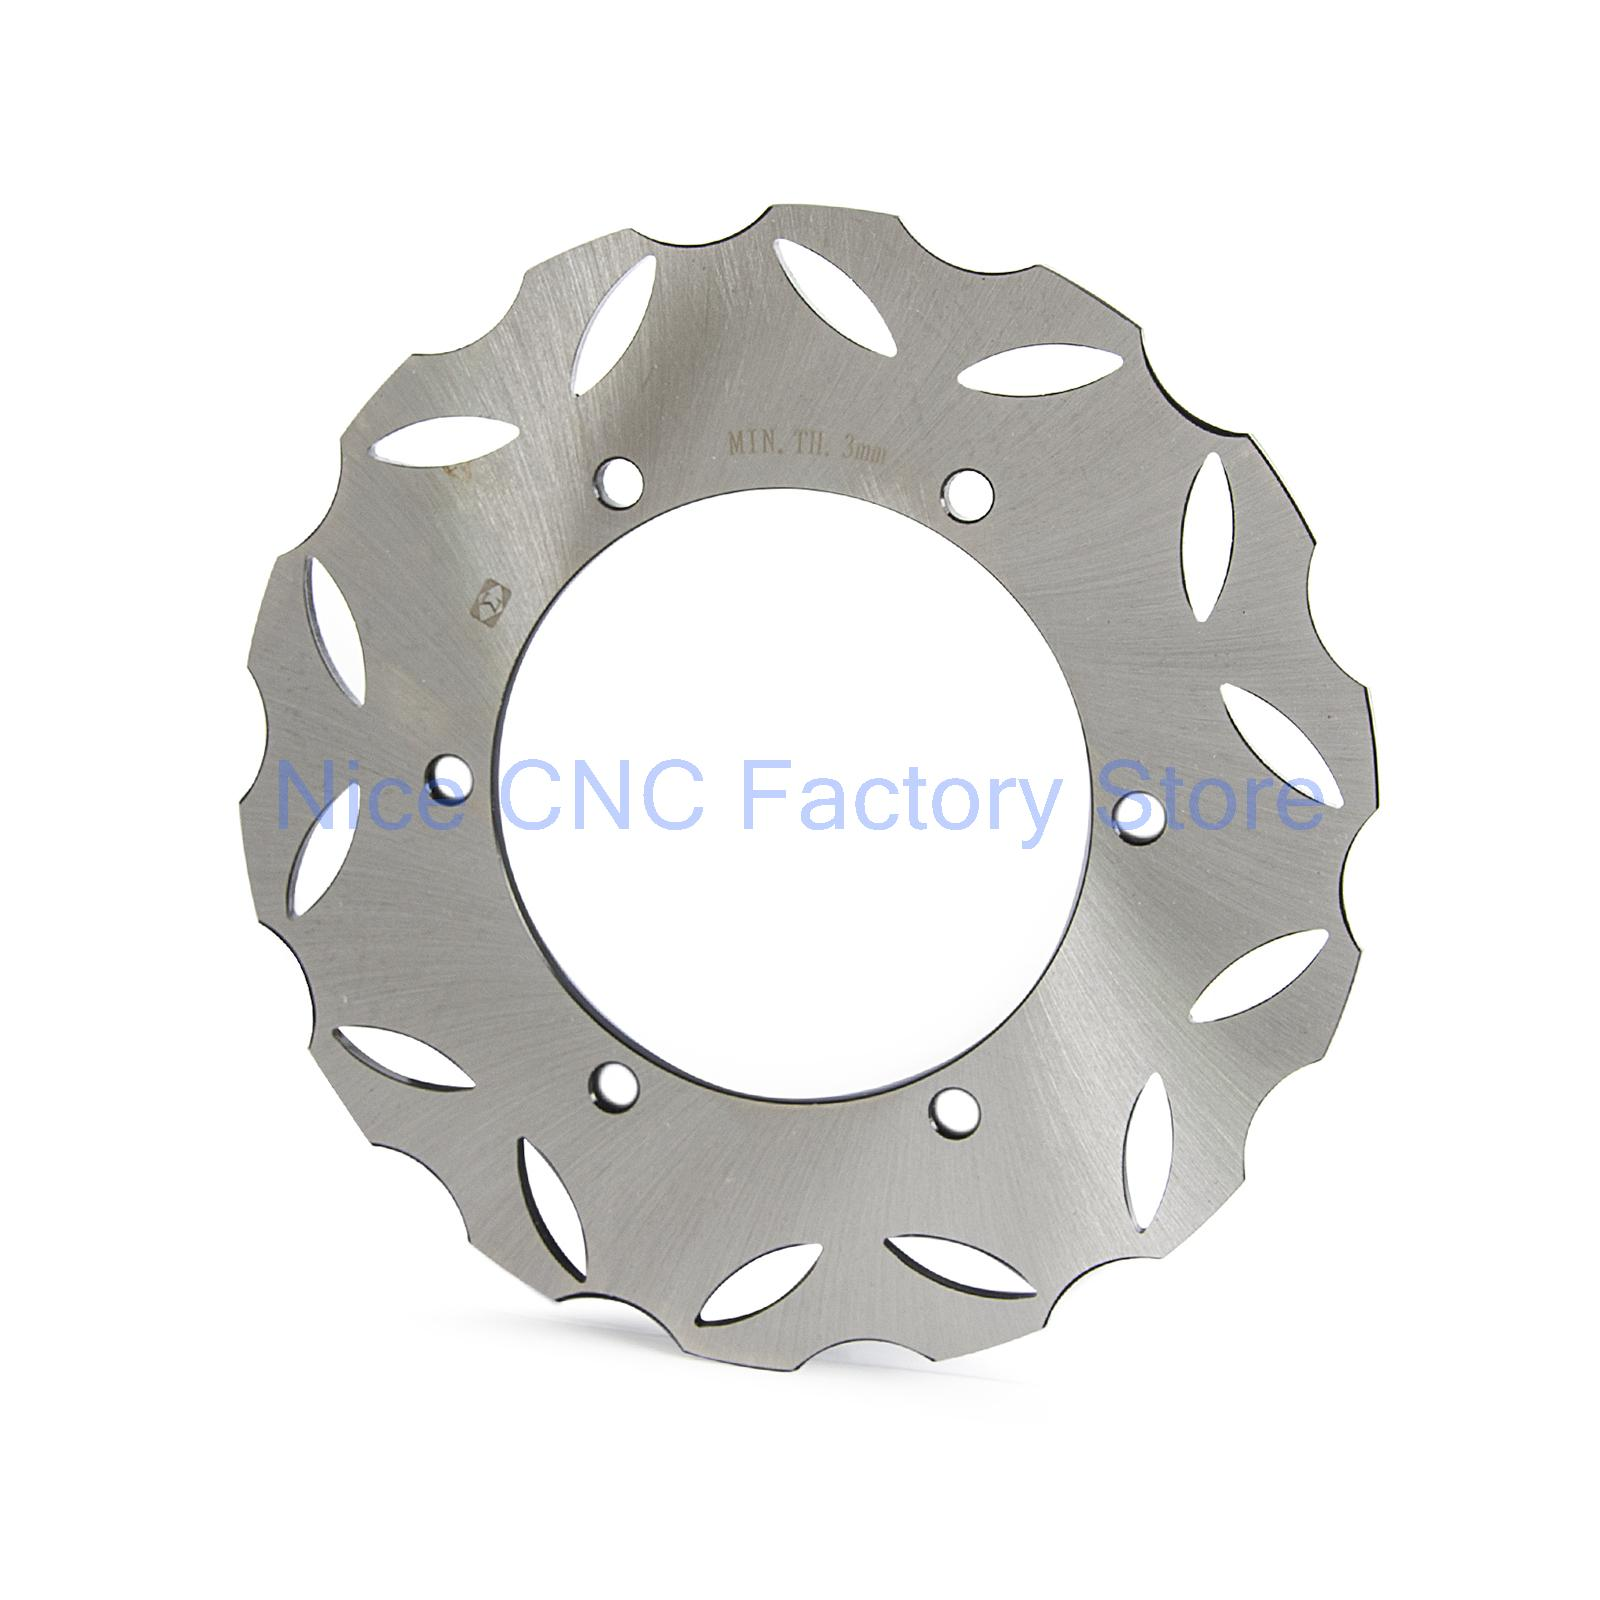 Motorcycle Rear Rotor Brake Disc For Yamaha 1000cc YZFR1 YZF-R1 2002 2003 YZFR6 YZF-R6 600cc 1999 2000 2001 2002 NEW кий для пула 2 рс joss j3500 page 7